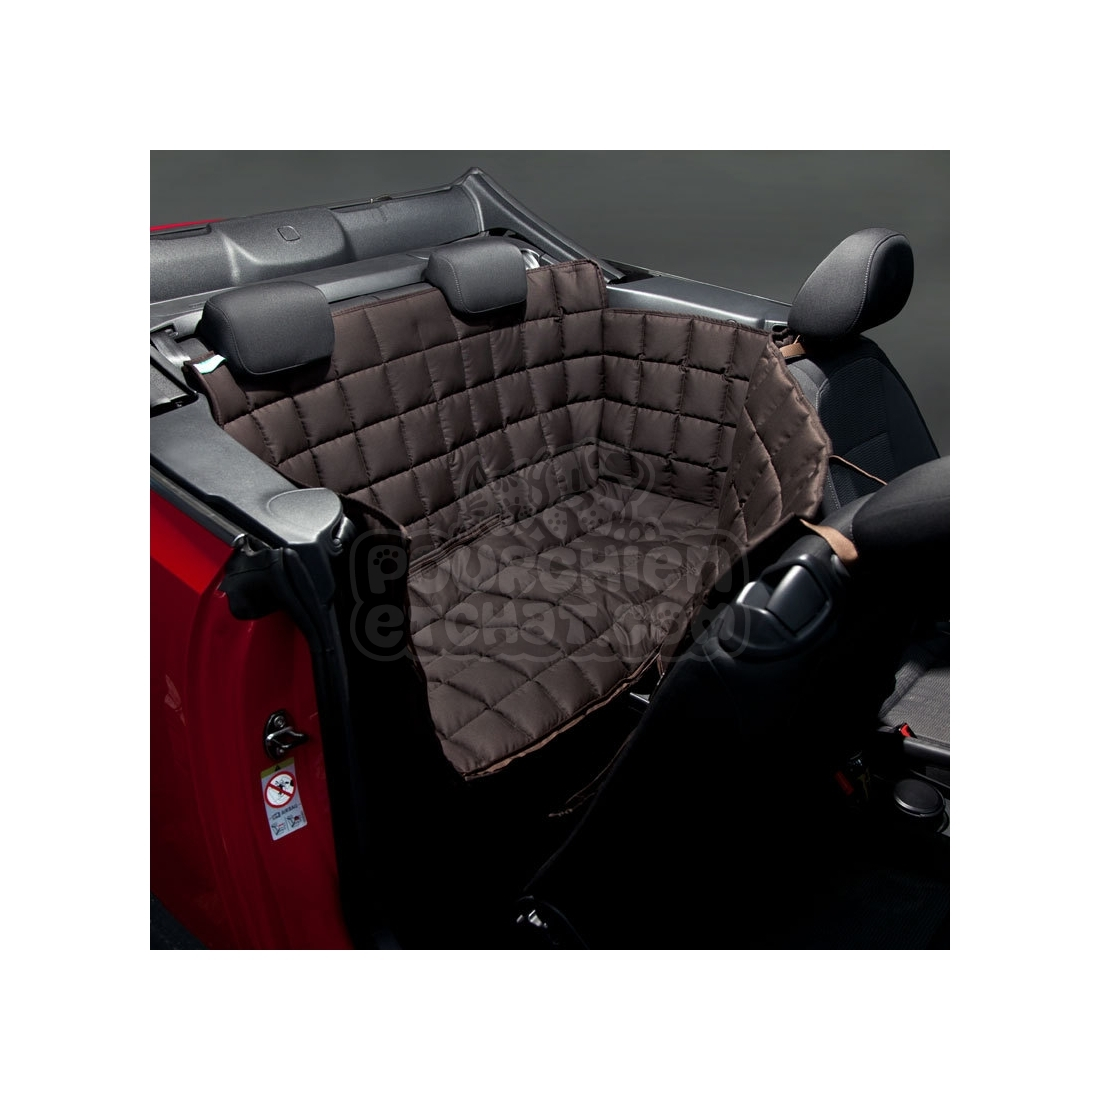 couverture de protection banquette arri re pour voiture 2 portes doctor bark marron. Black Bedroom Furniture Sets. Home Design Ideas